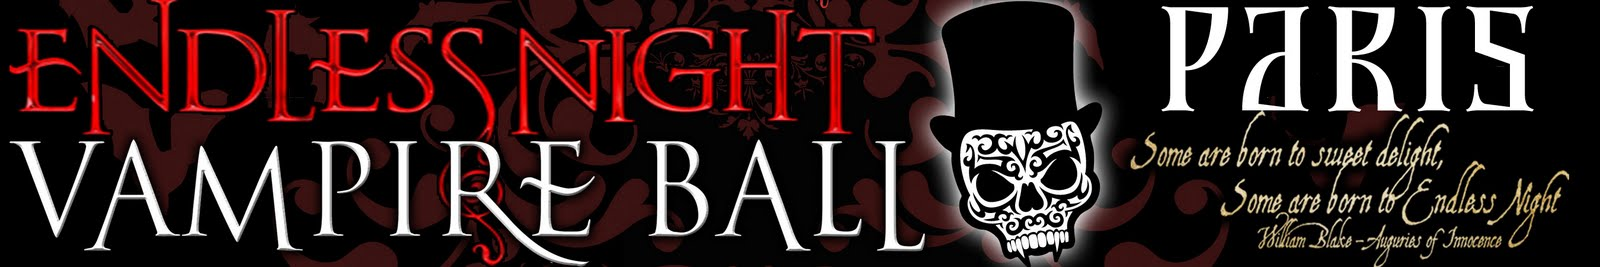 ParisVampireBall.com